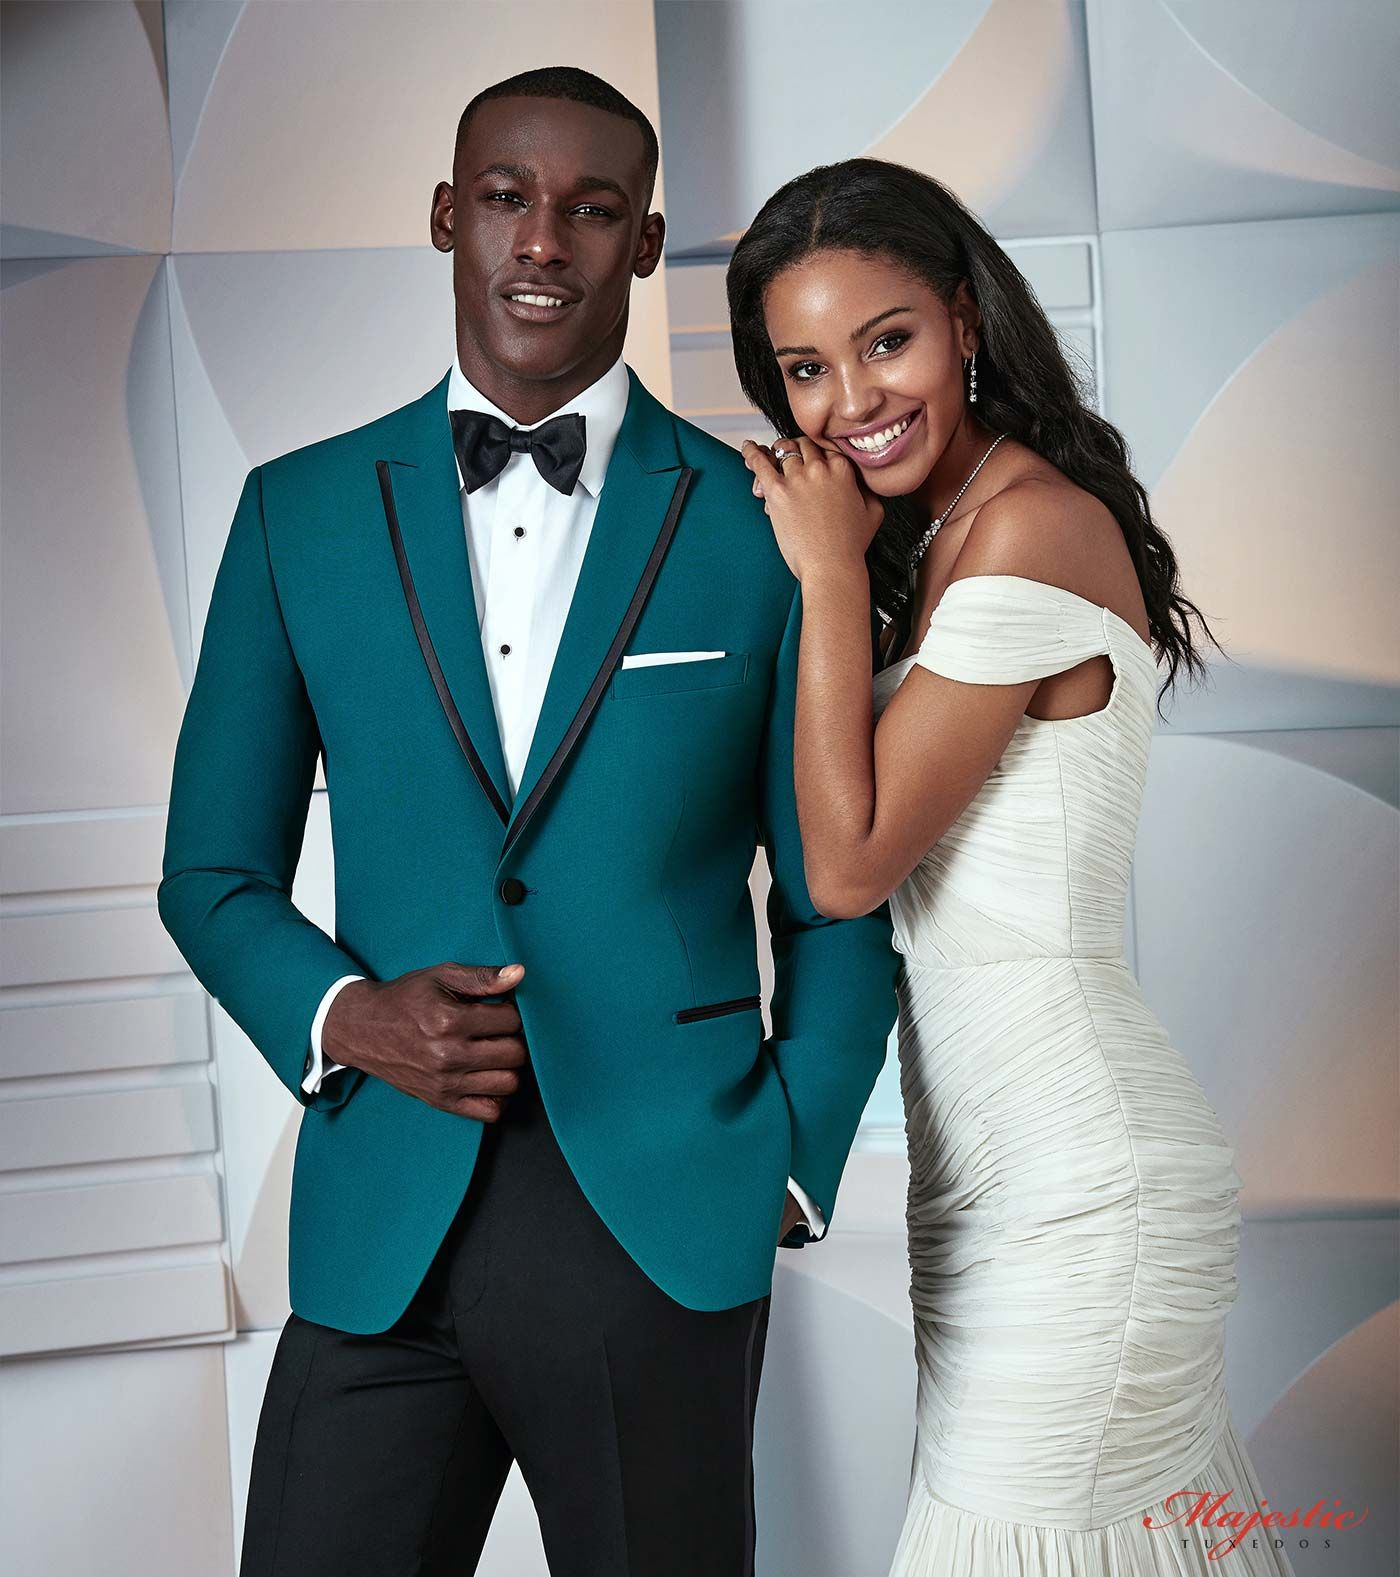 Awesome Tuxedo For A Wedding Gift - All Wedding Dresses ...